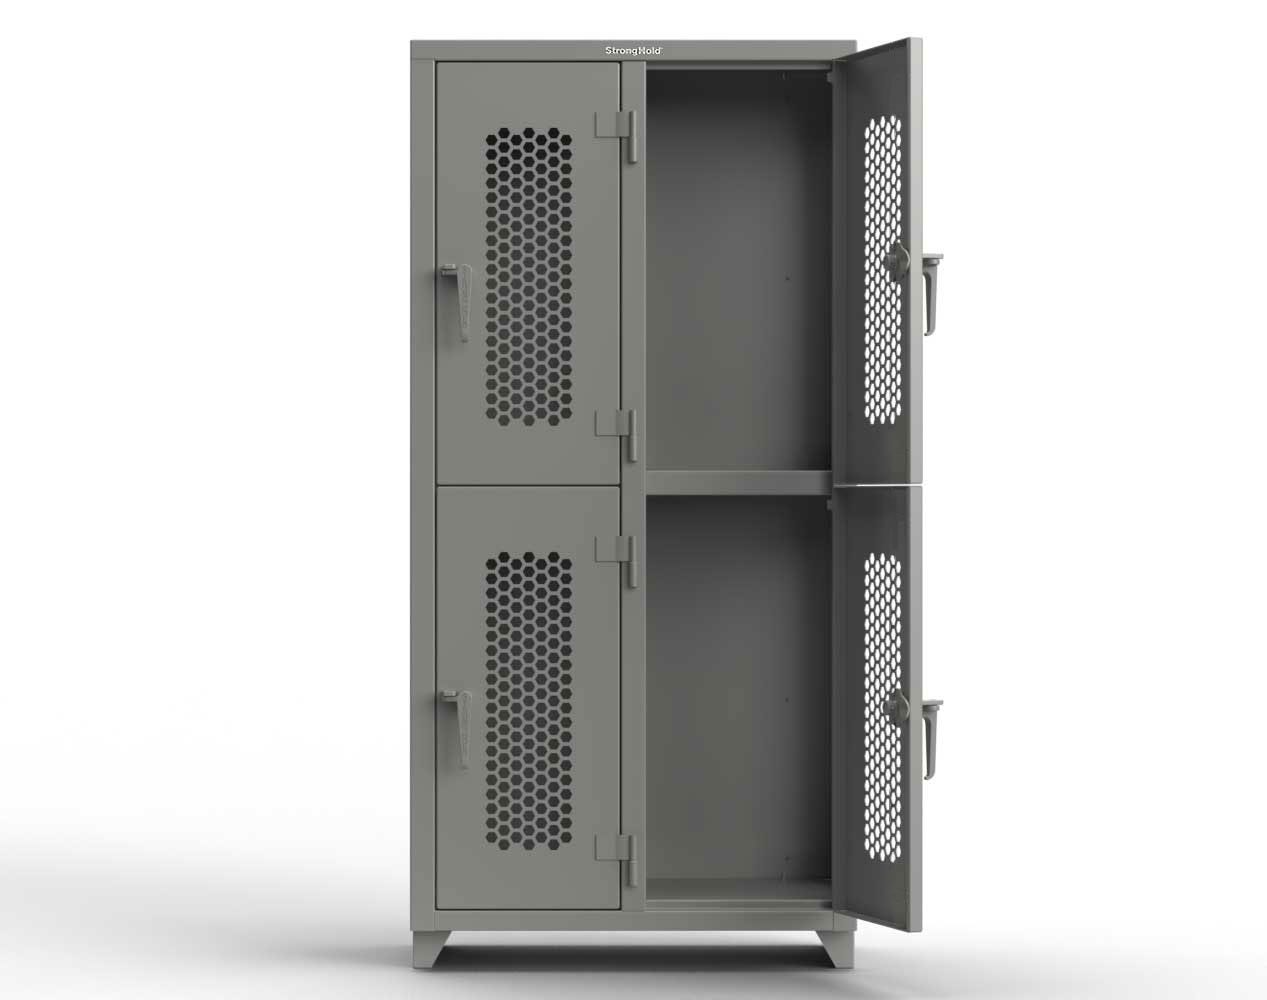 Extra Heavy Duty 14 GA Double-Tier Ventilated Locker, 4 Compartments – 36 in. W x 18 in. D x 75 in. H